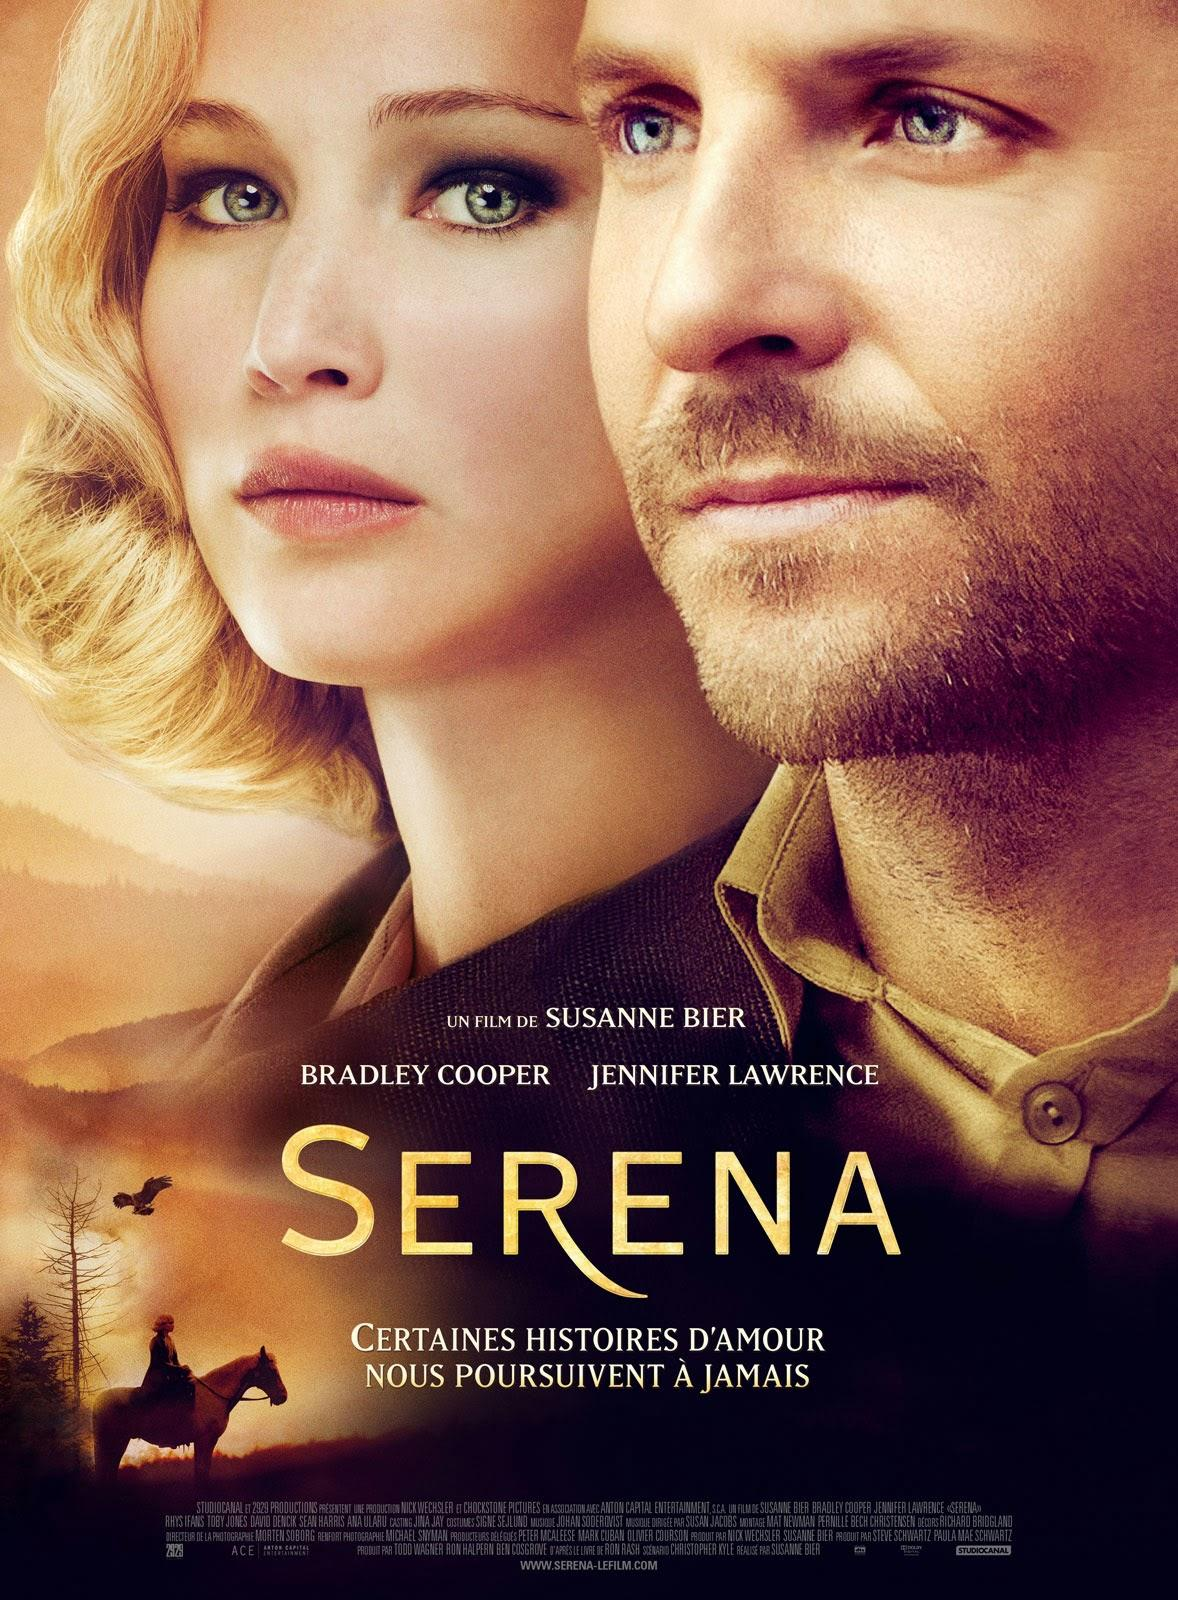 CINEMA: Serena (2014), les coûts de l'amour / the costs of love